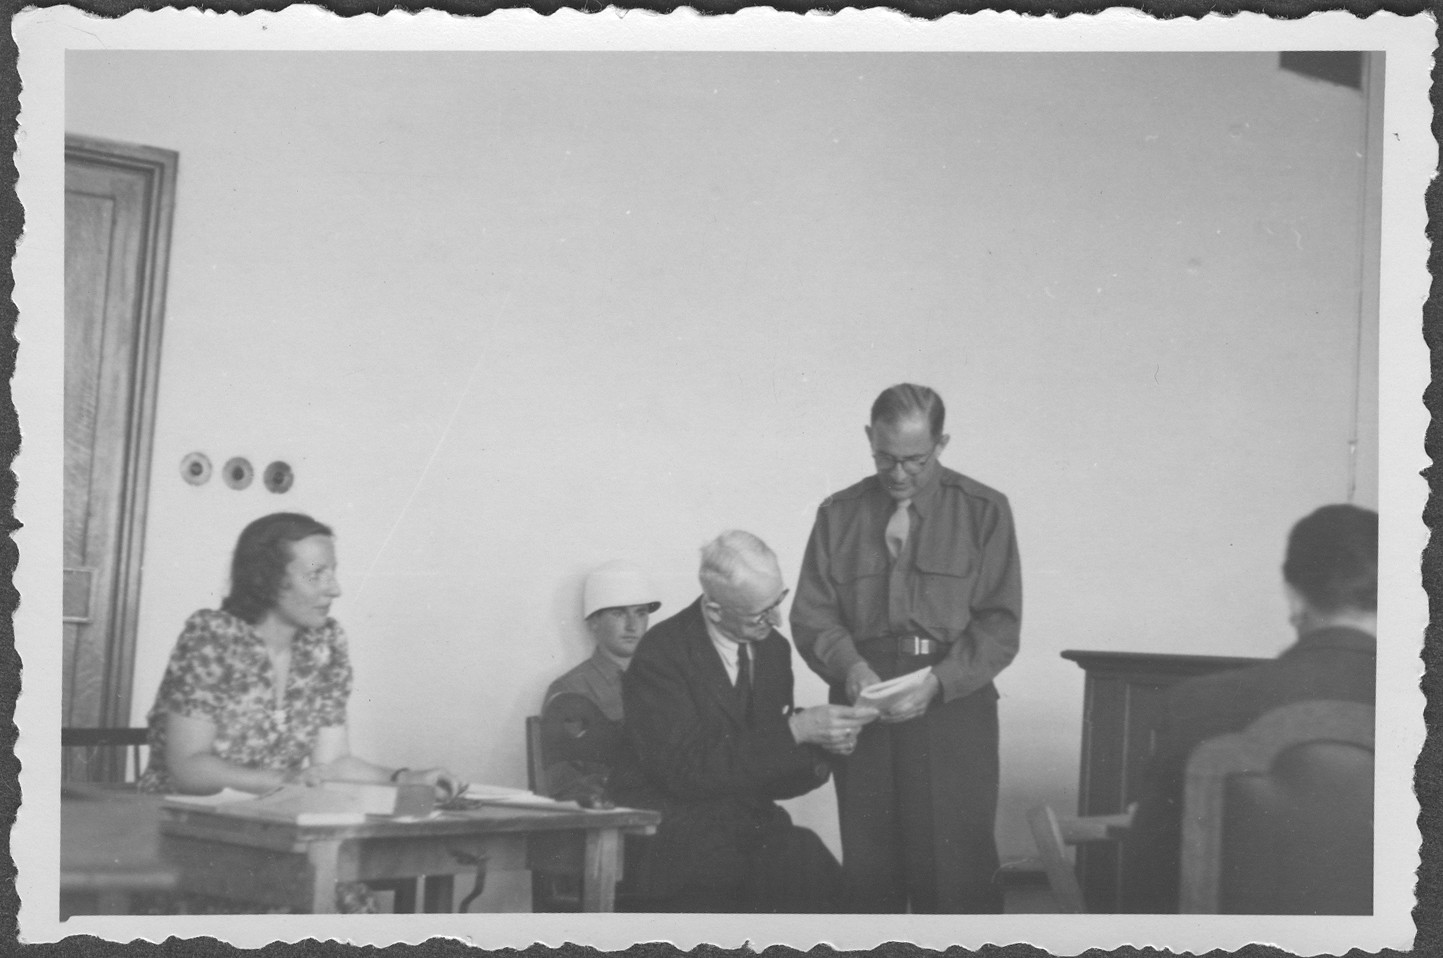 American assistant prosecutor Robert M.W. Kempner shows a document to German Field Marshall Erich von Manstein at the IMT Nuremberg commission hearings investigating indicted Nazi organizations.  Also pictured is the interpreter, Mrs. Lowenstein.